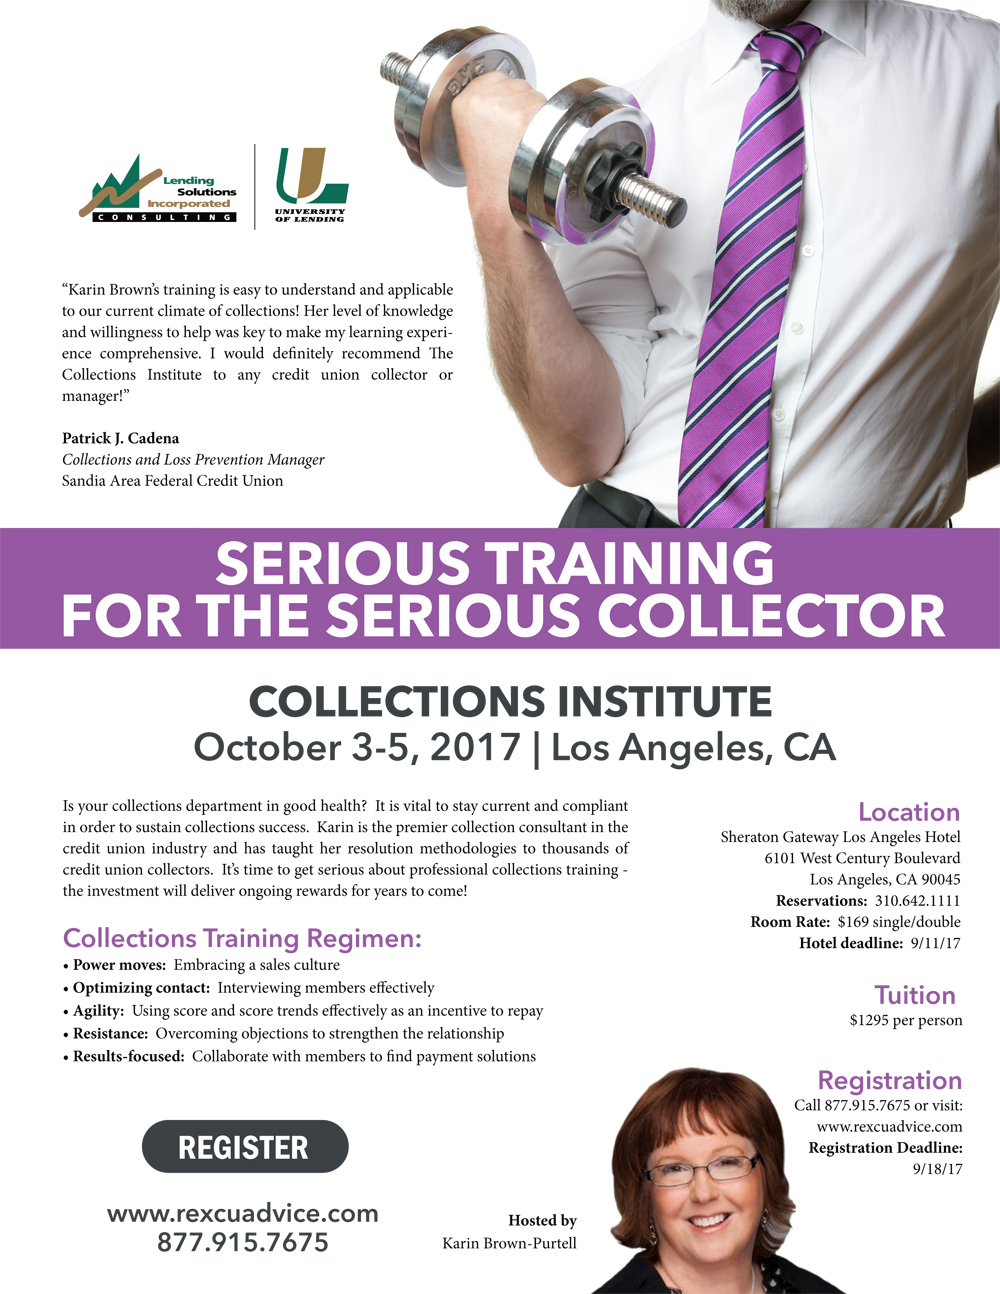 Collections Institute - Los Angeles, CA - October 3-5, 2017